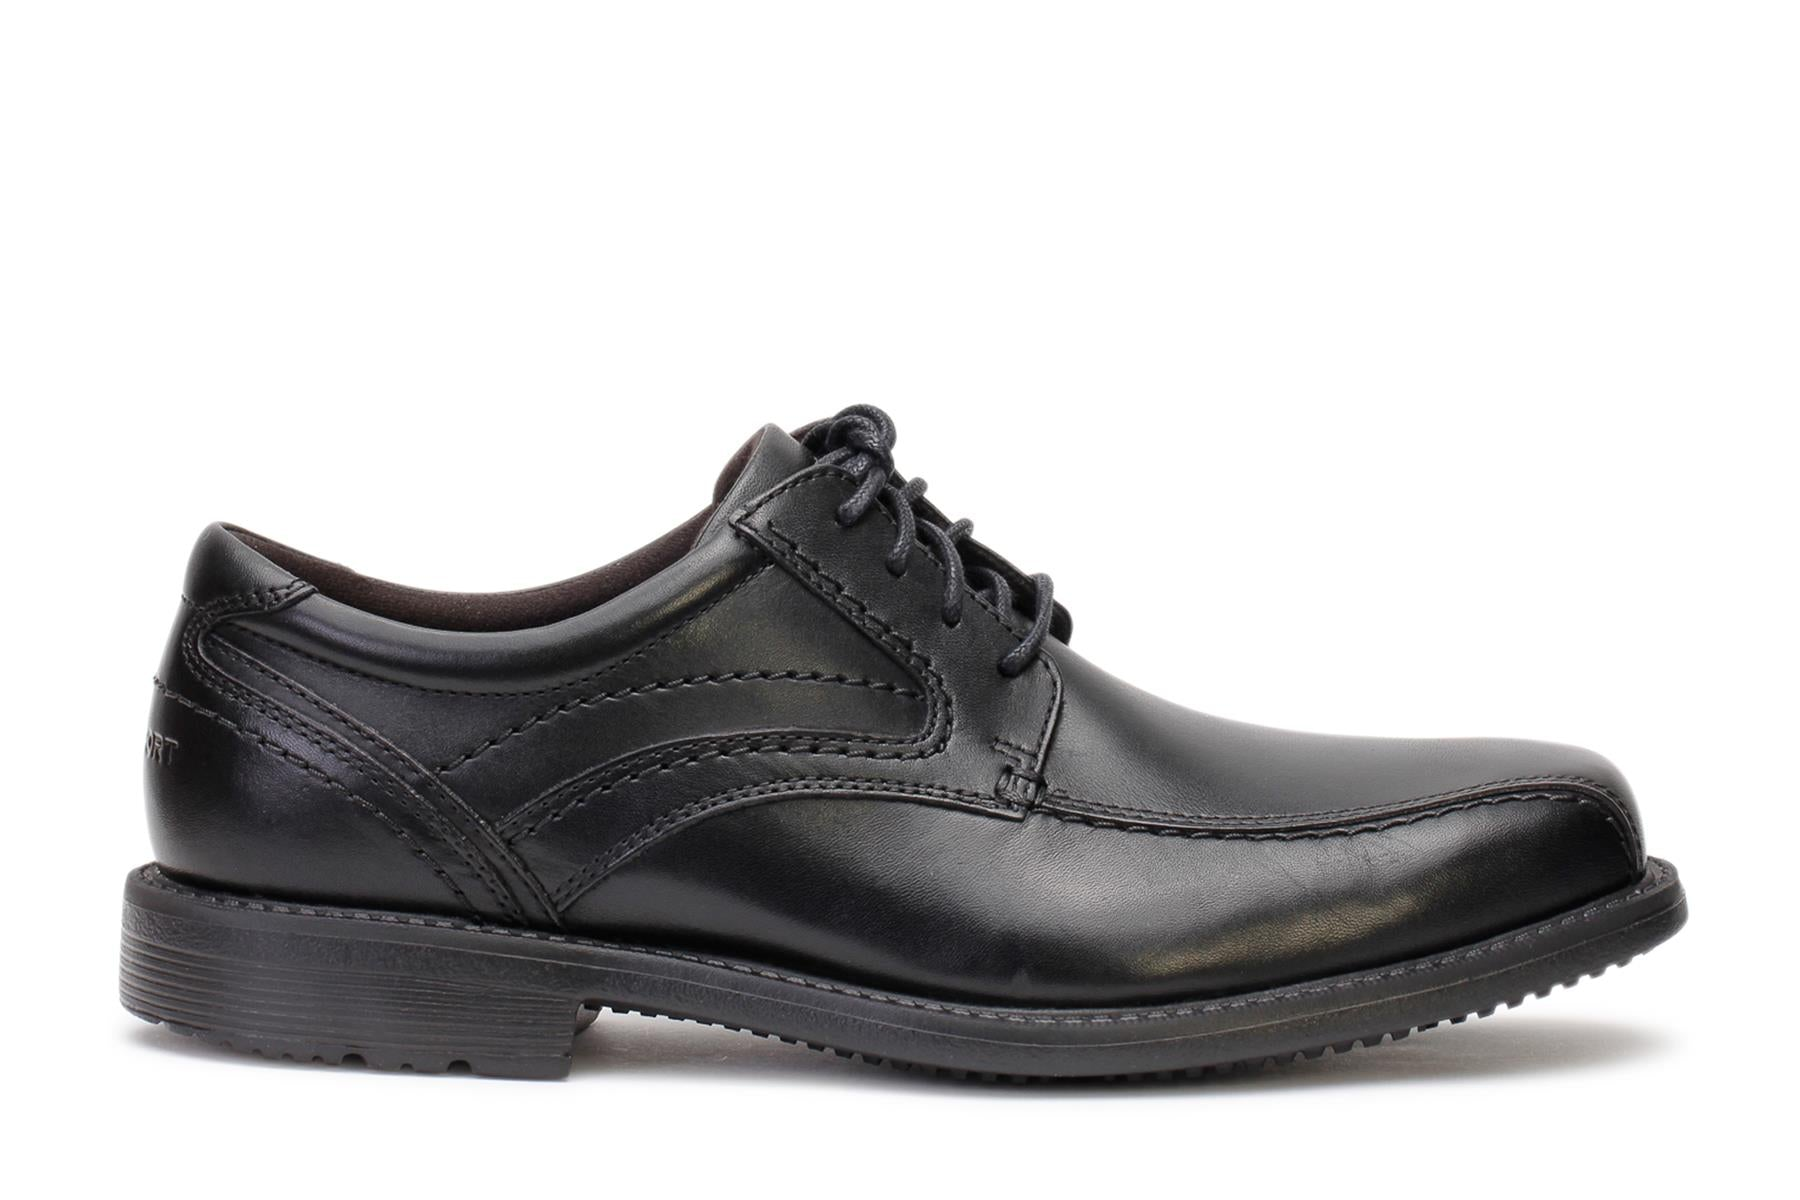 Rockport Men's Oxford Shoes Classic Tradition Bike Toe Black V80544